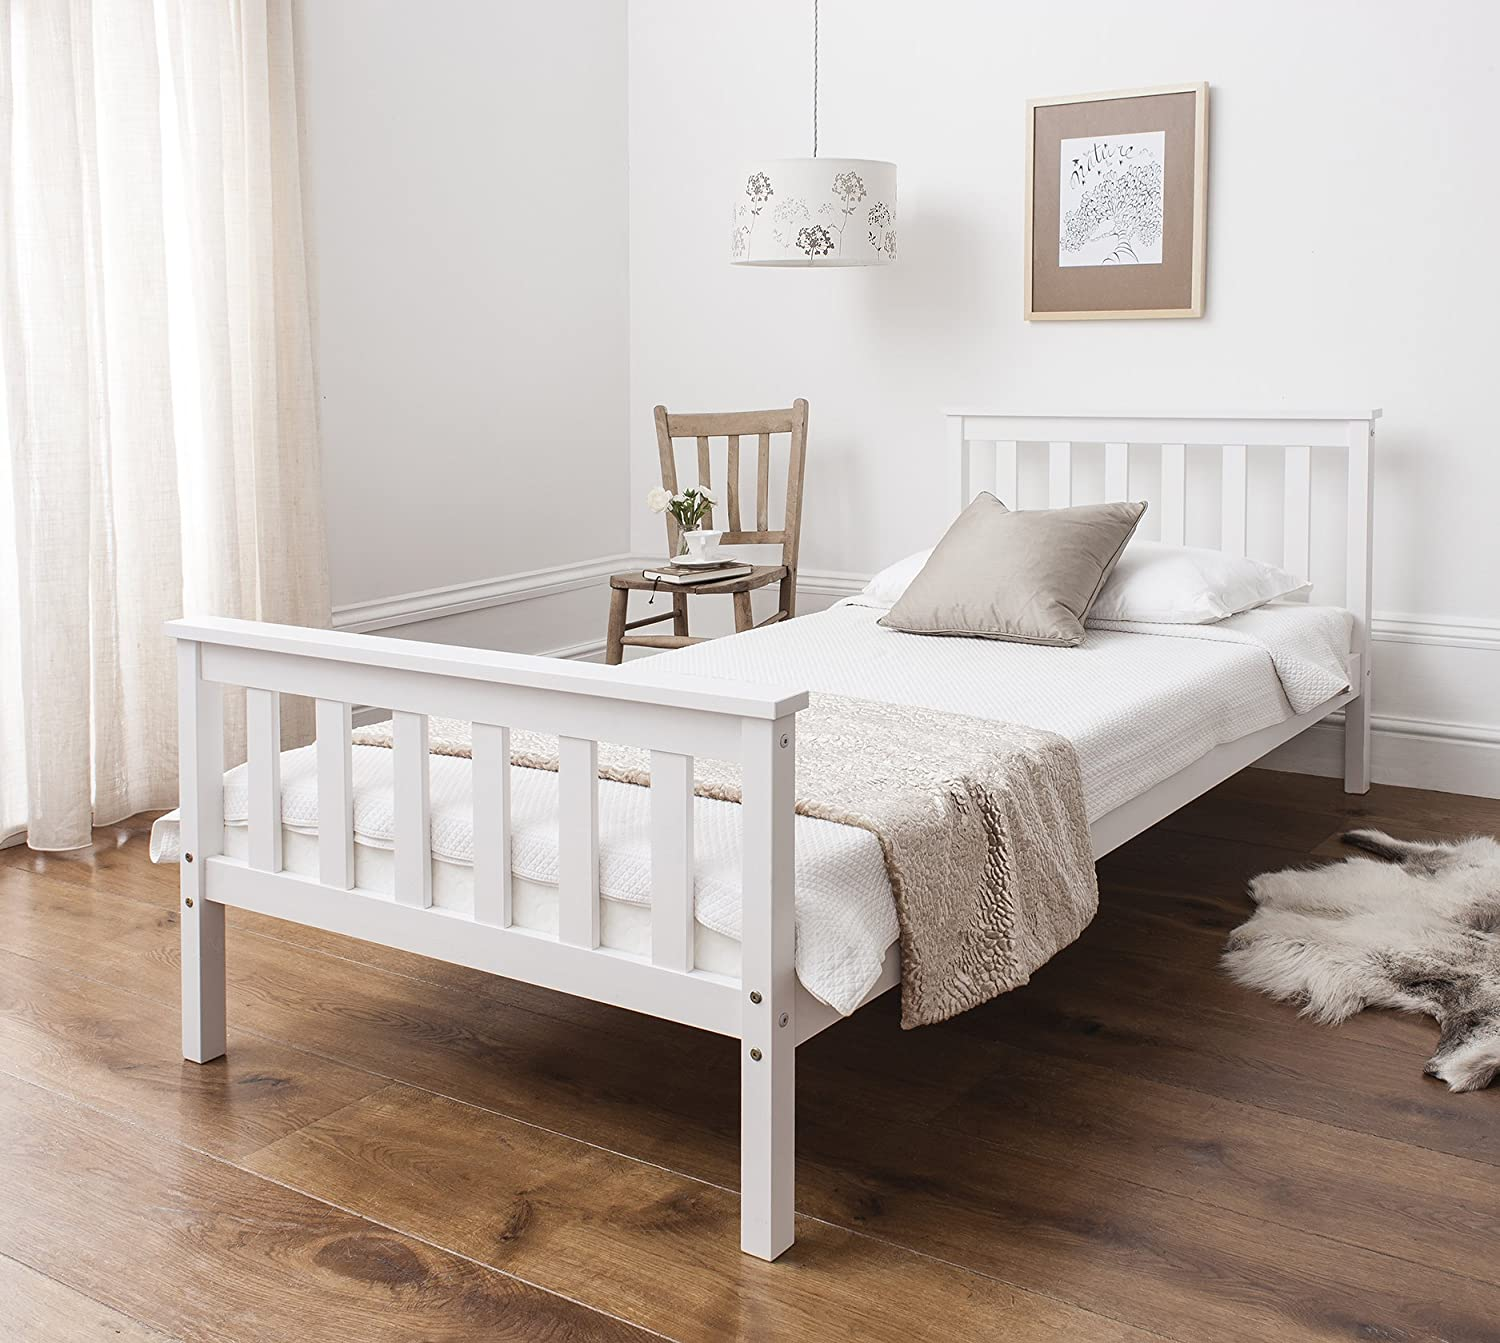 Single Bed in White 3ft Single Bed Wooden Frame WHITE Dorset Amazon